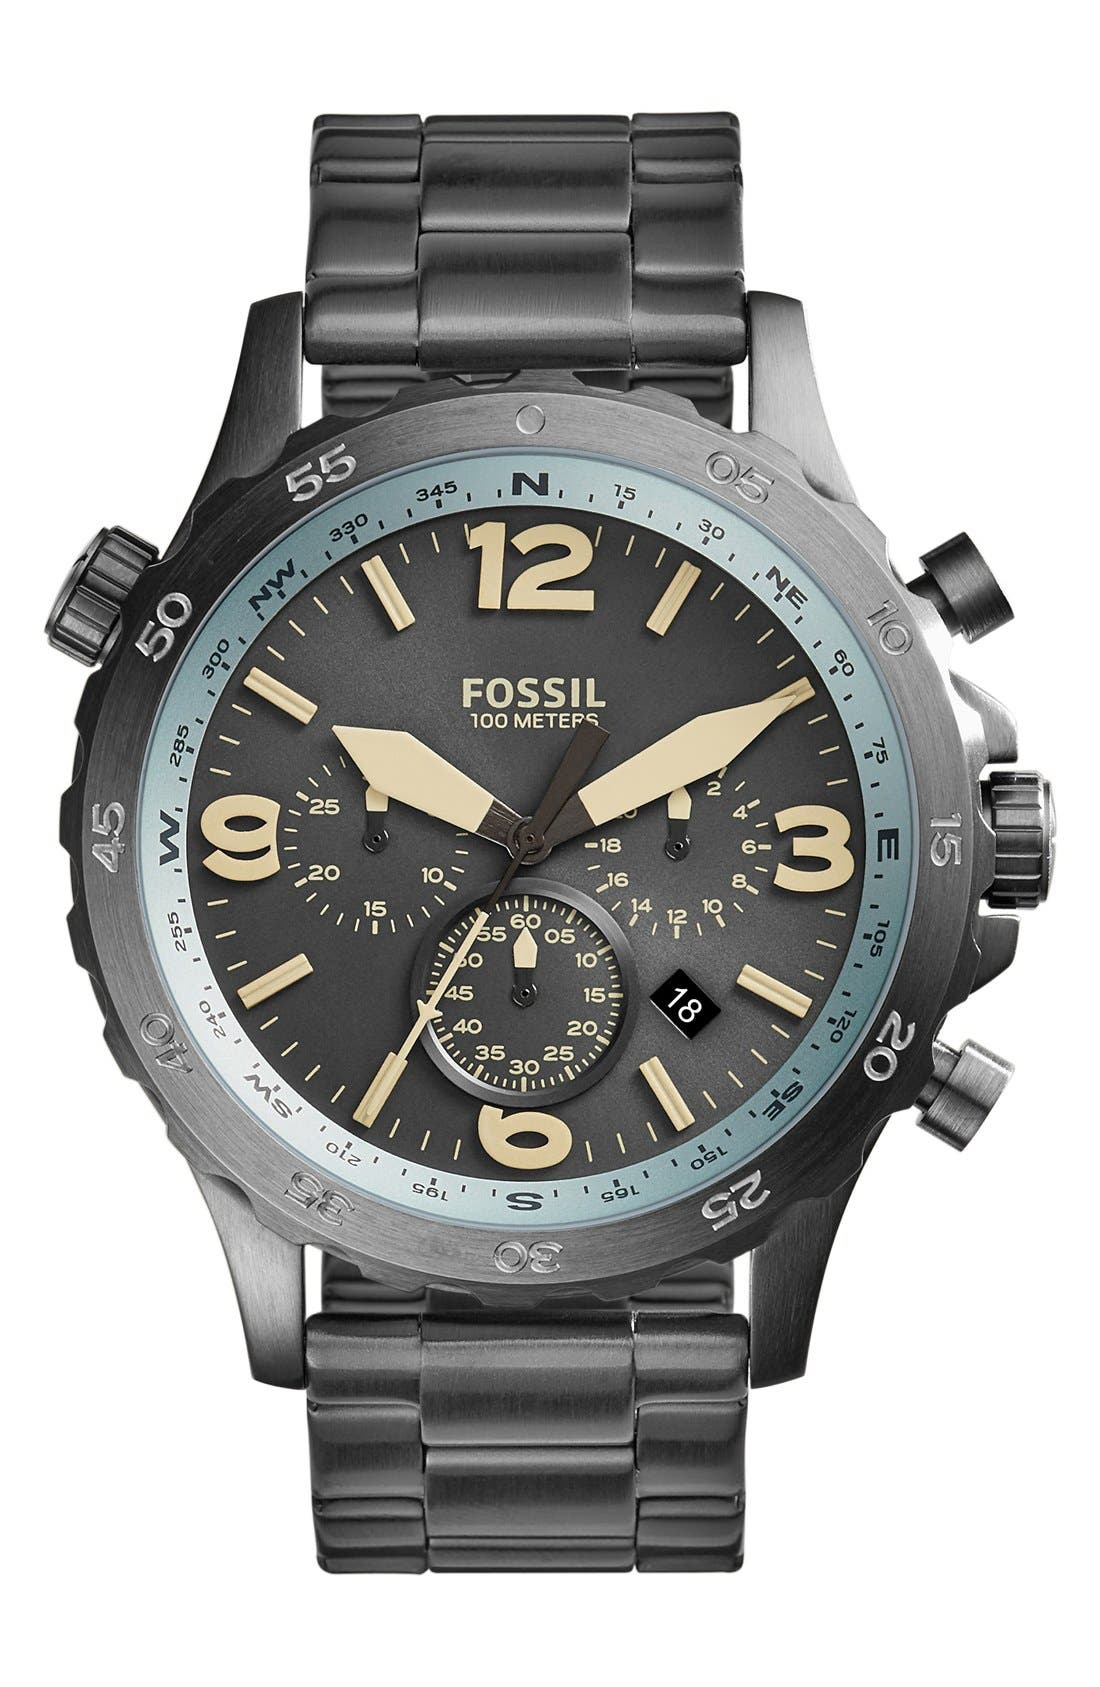 Main Image - Fossil 'Nate' Chronograph Bracelet Watch, 50mm